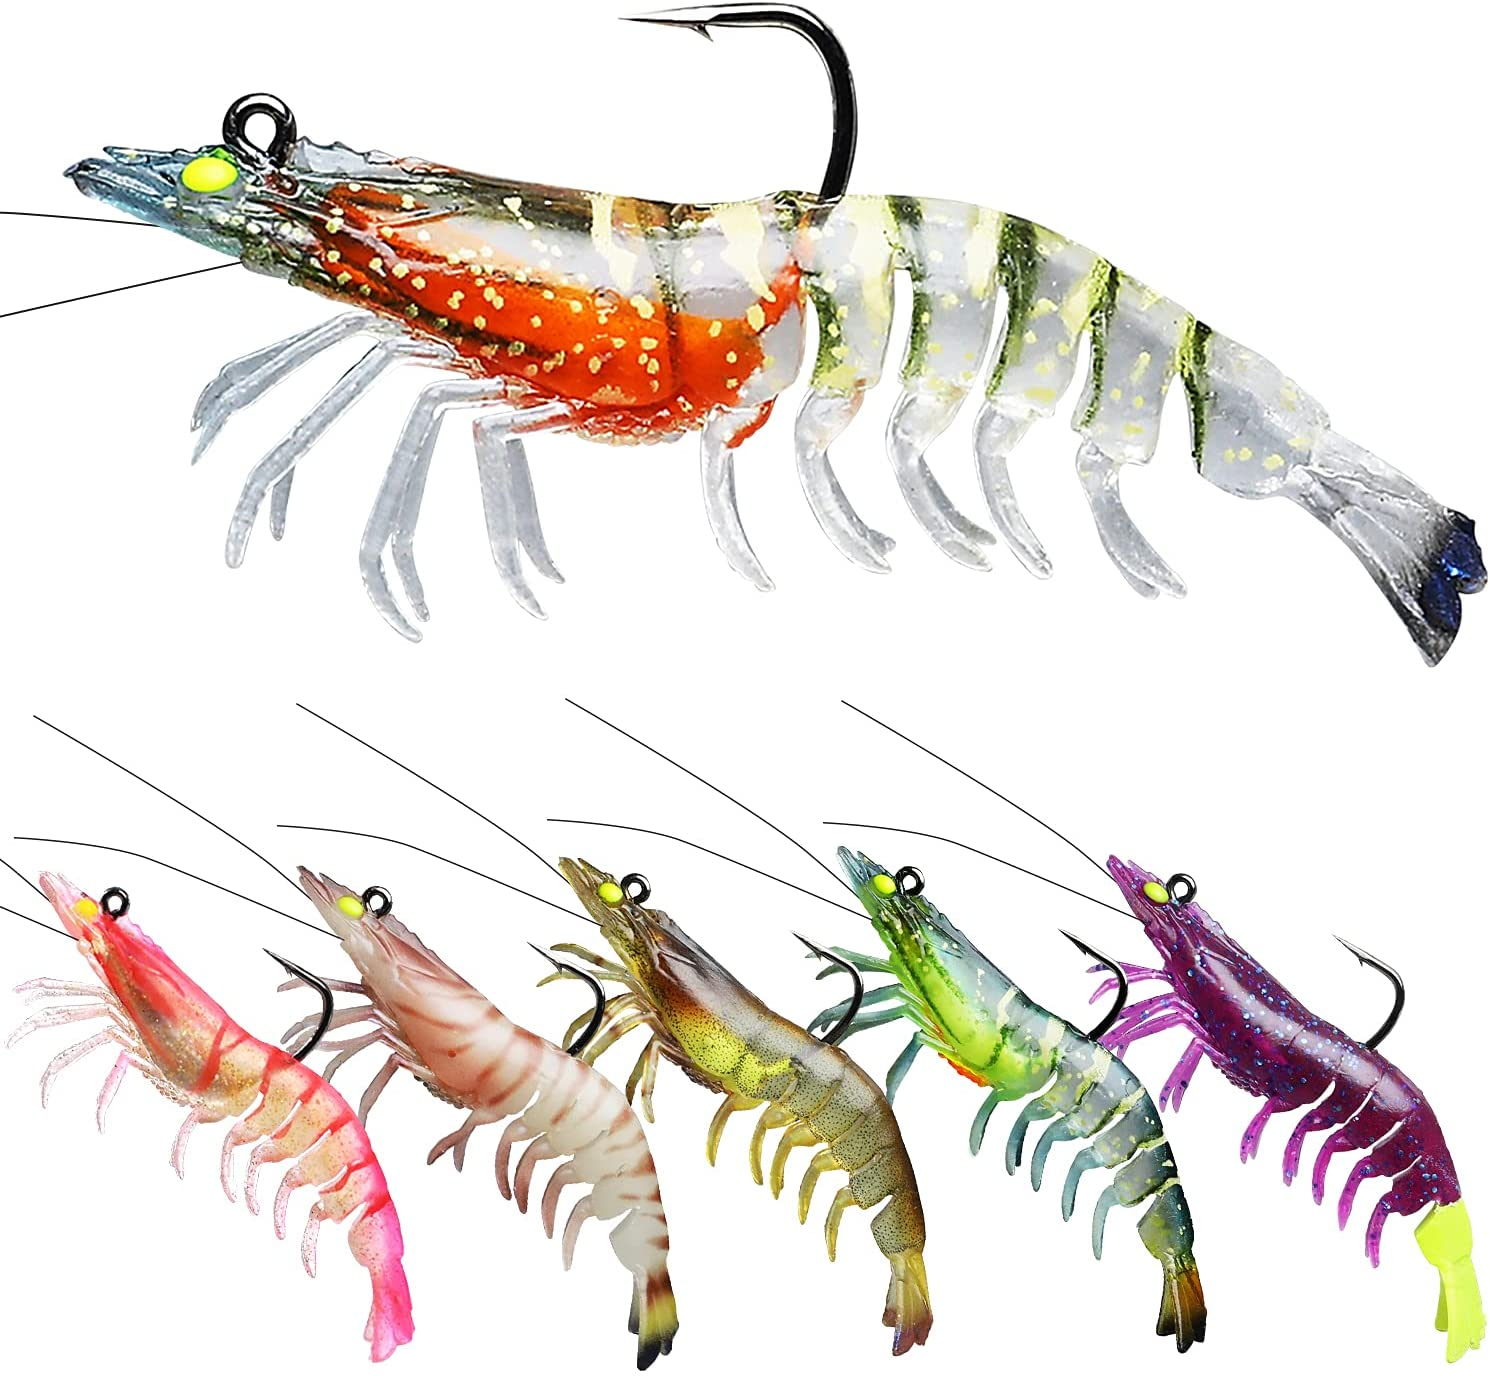 TRUSCEND Fishing Lures for Bass Trout 6PCS Jighead Shrimp Lures Paddle Tail Swimbaits Soft Fishing Baits Freshwater Saltwater Jigging Bass Fishing Lures : Sports & Outdoors